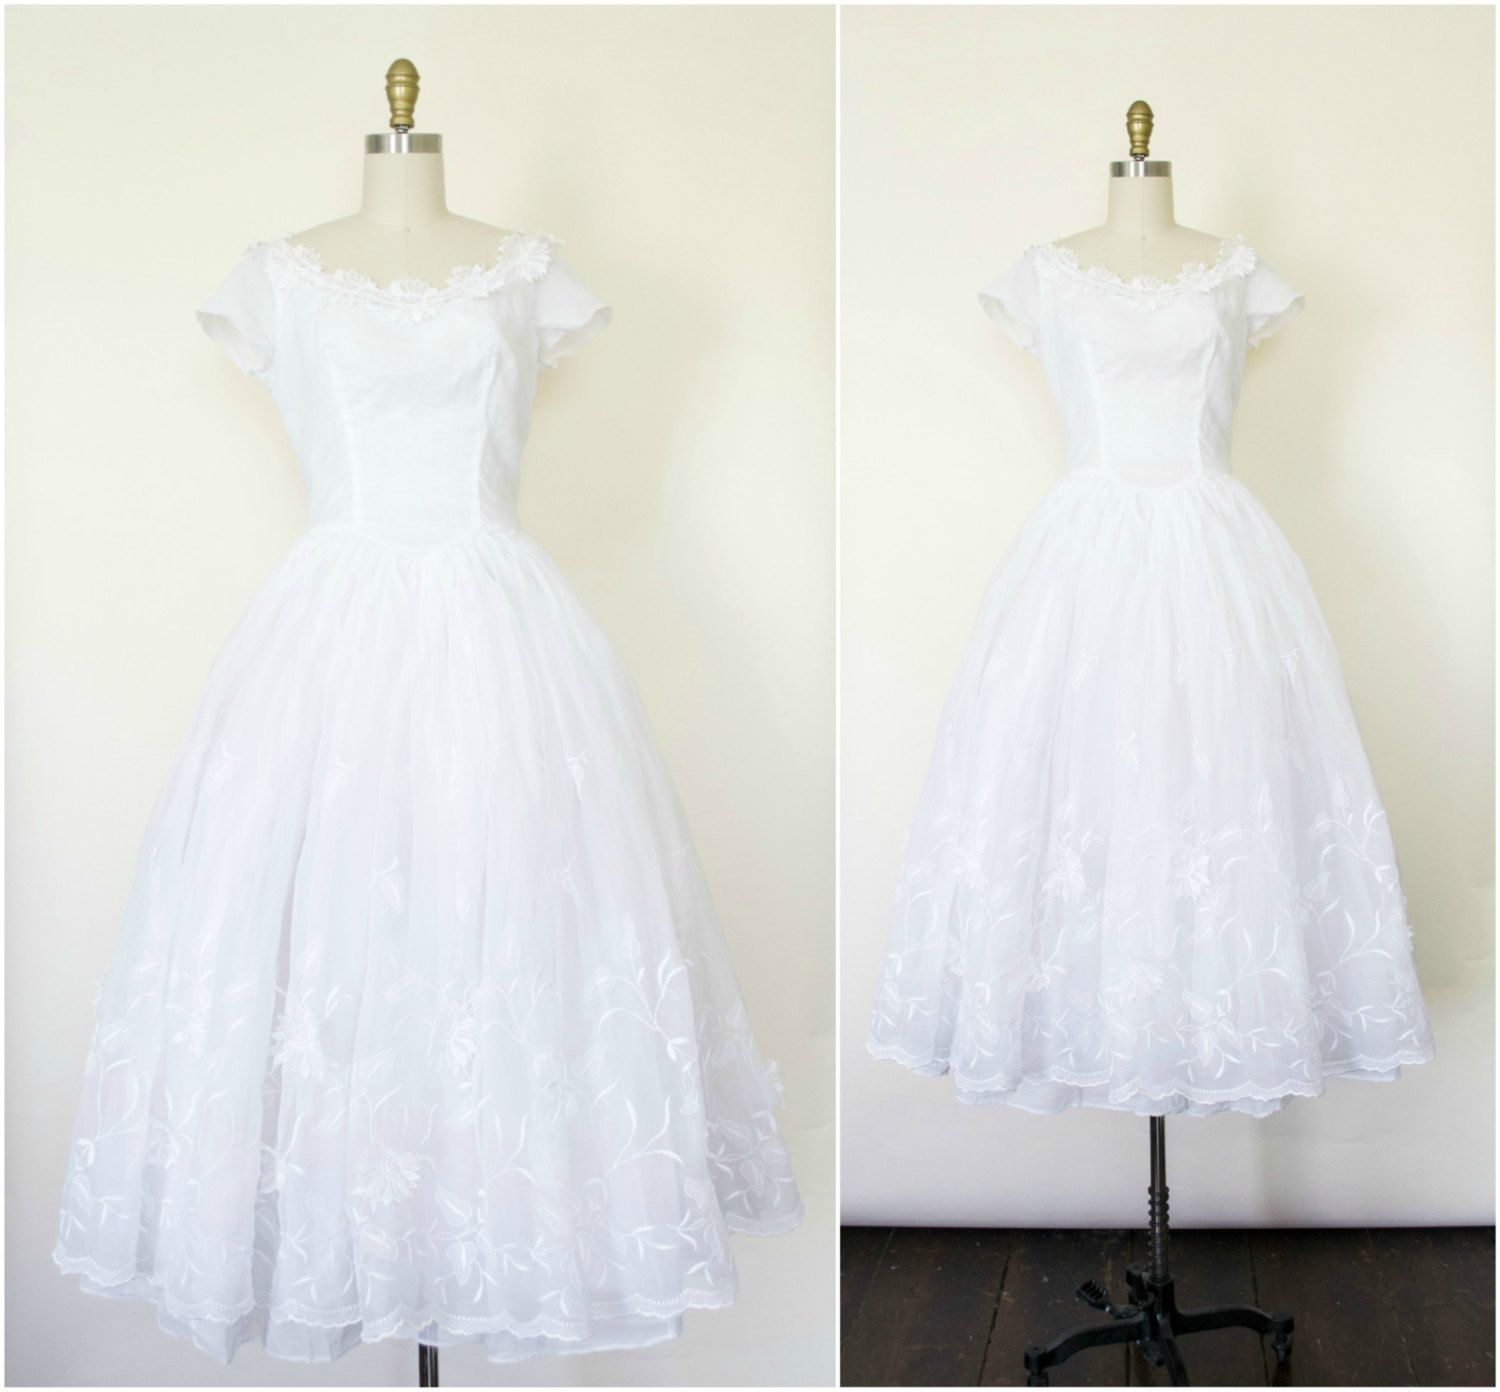 S lace and tulle white tea length wedding dress with d flowers